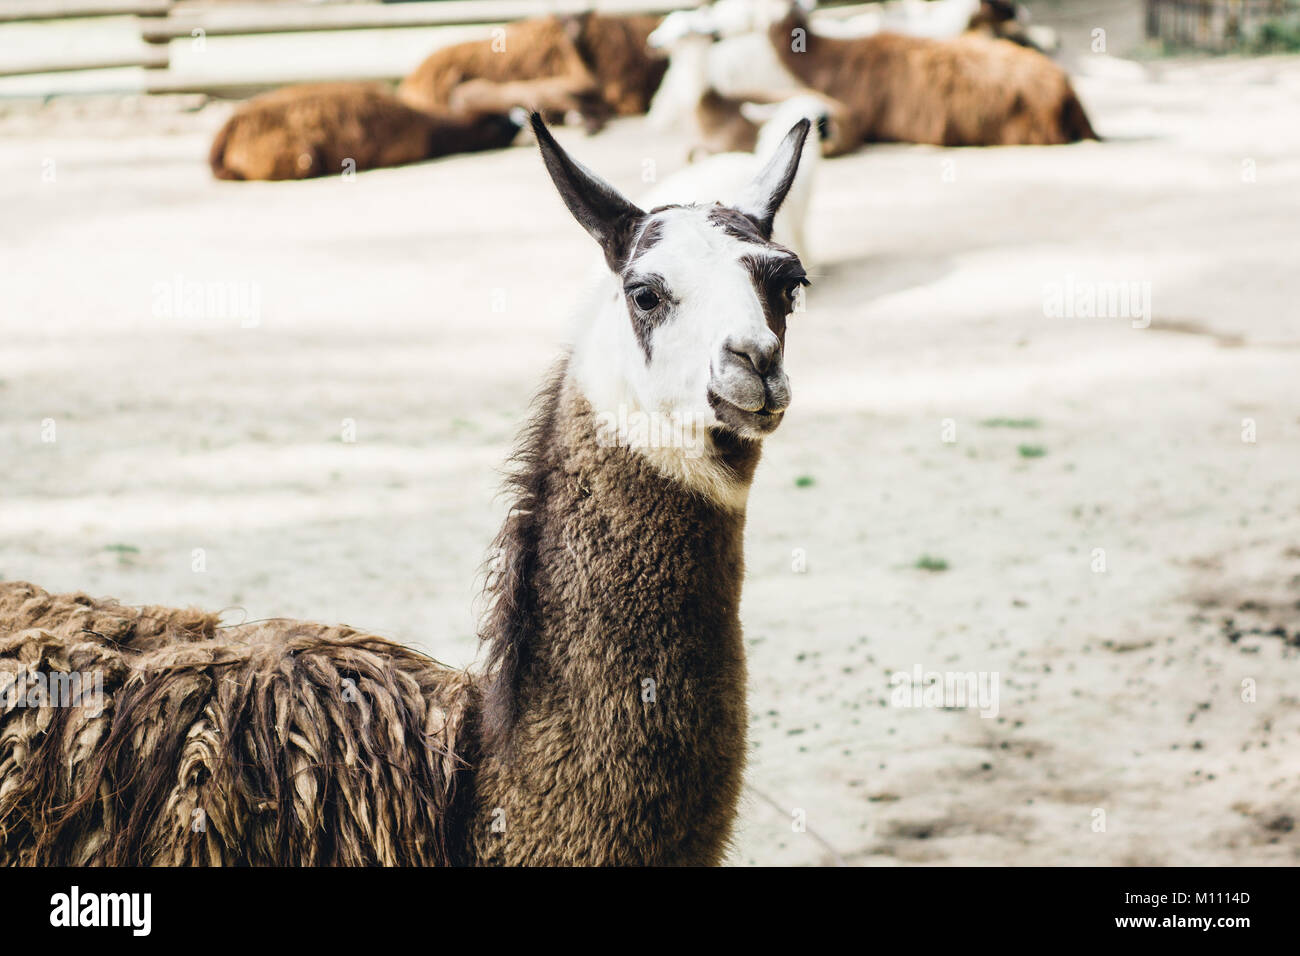 Brown and white patched llama closeup portrait - Stock Image